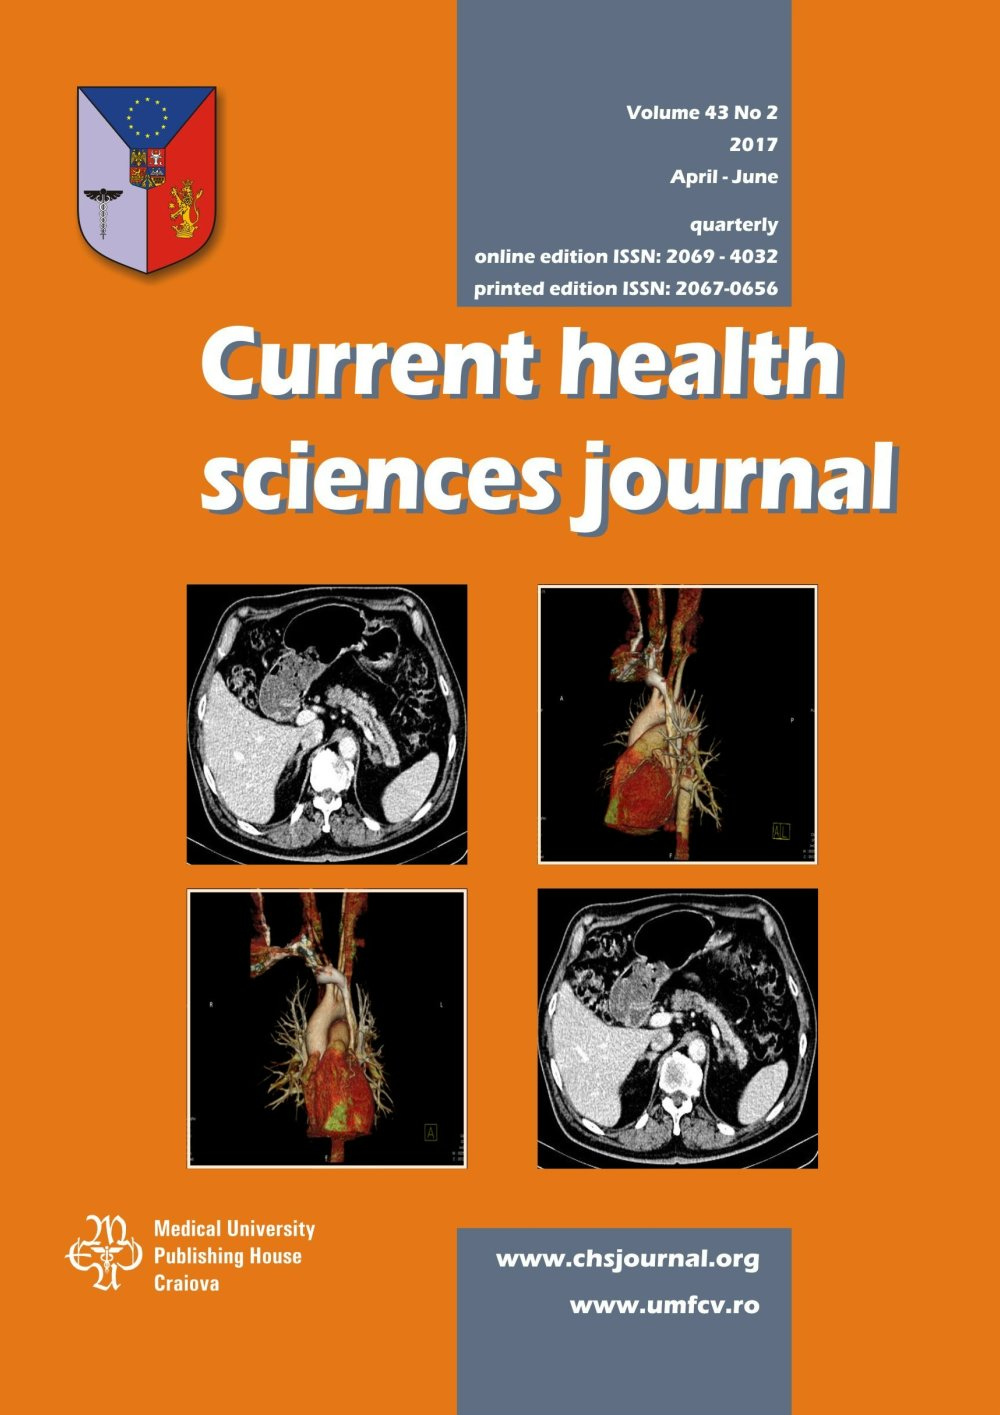 Current Health Sciences Journal, vol. 43 no. 2, 2017